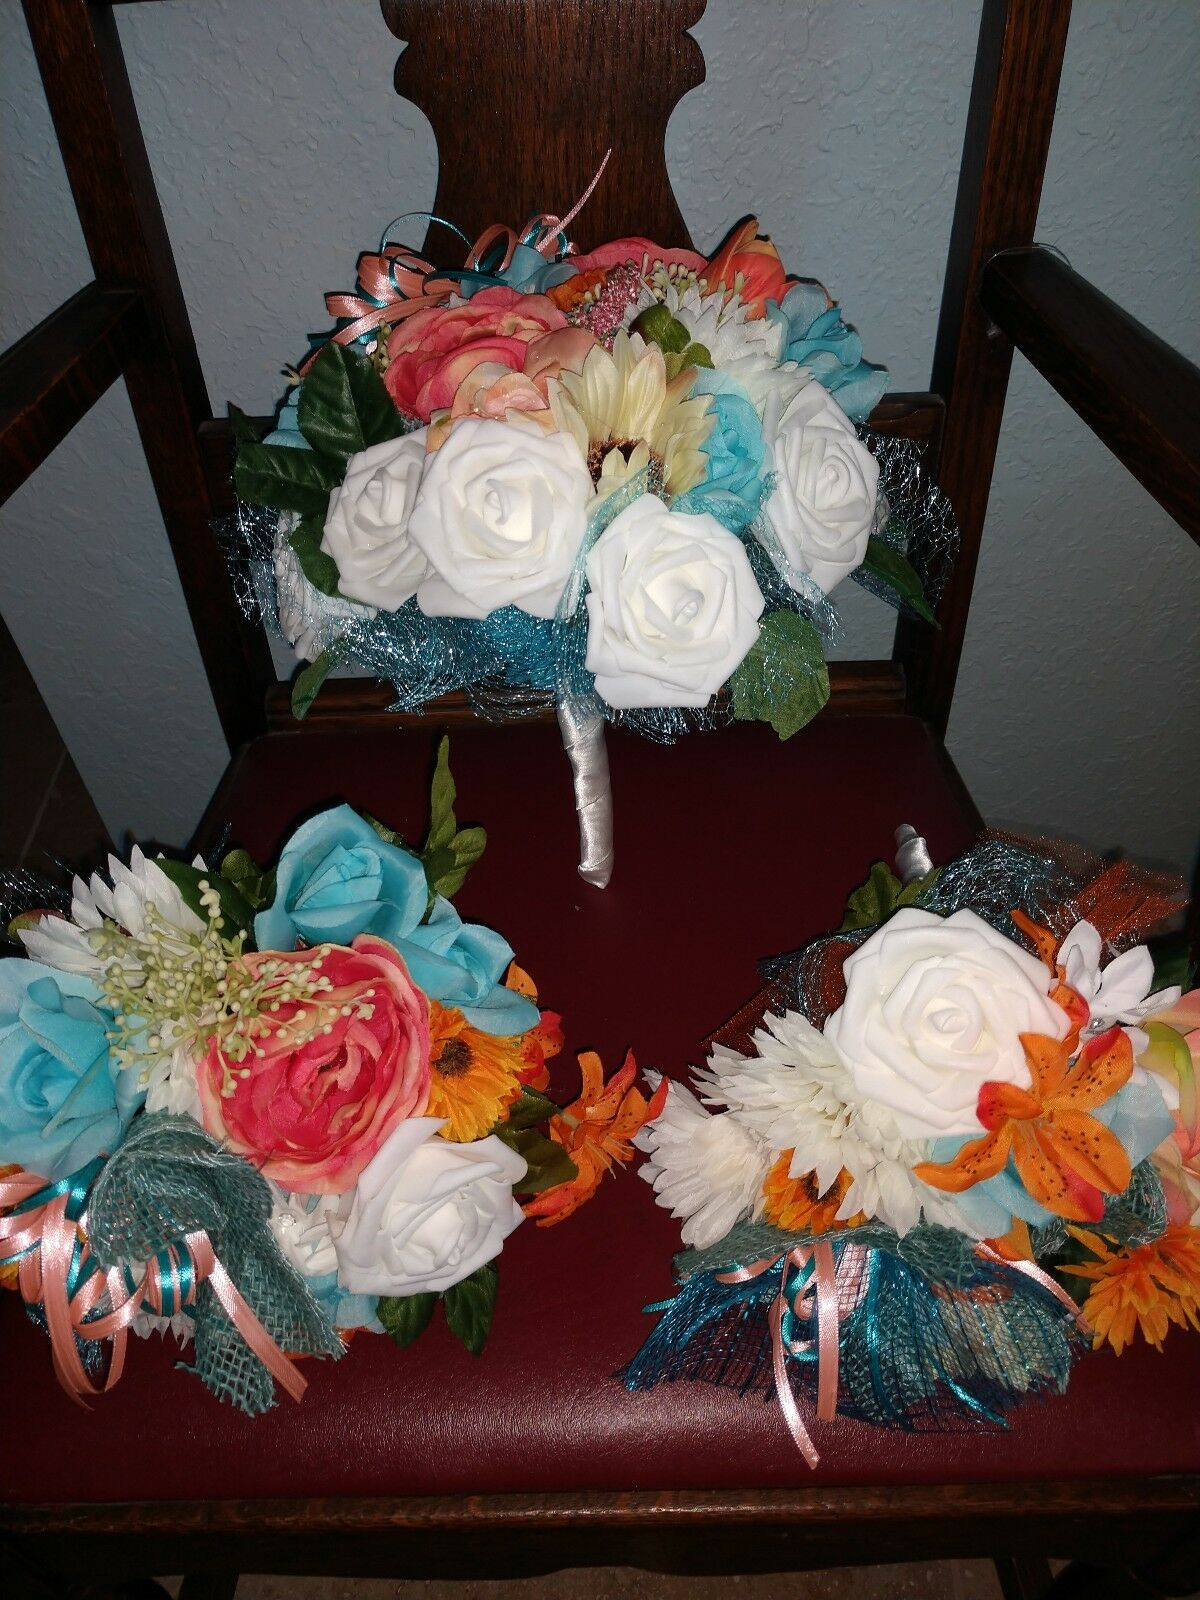 Wedding flowers bridal bouquets decorations coral turquoise ivory blanc 21 PC